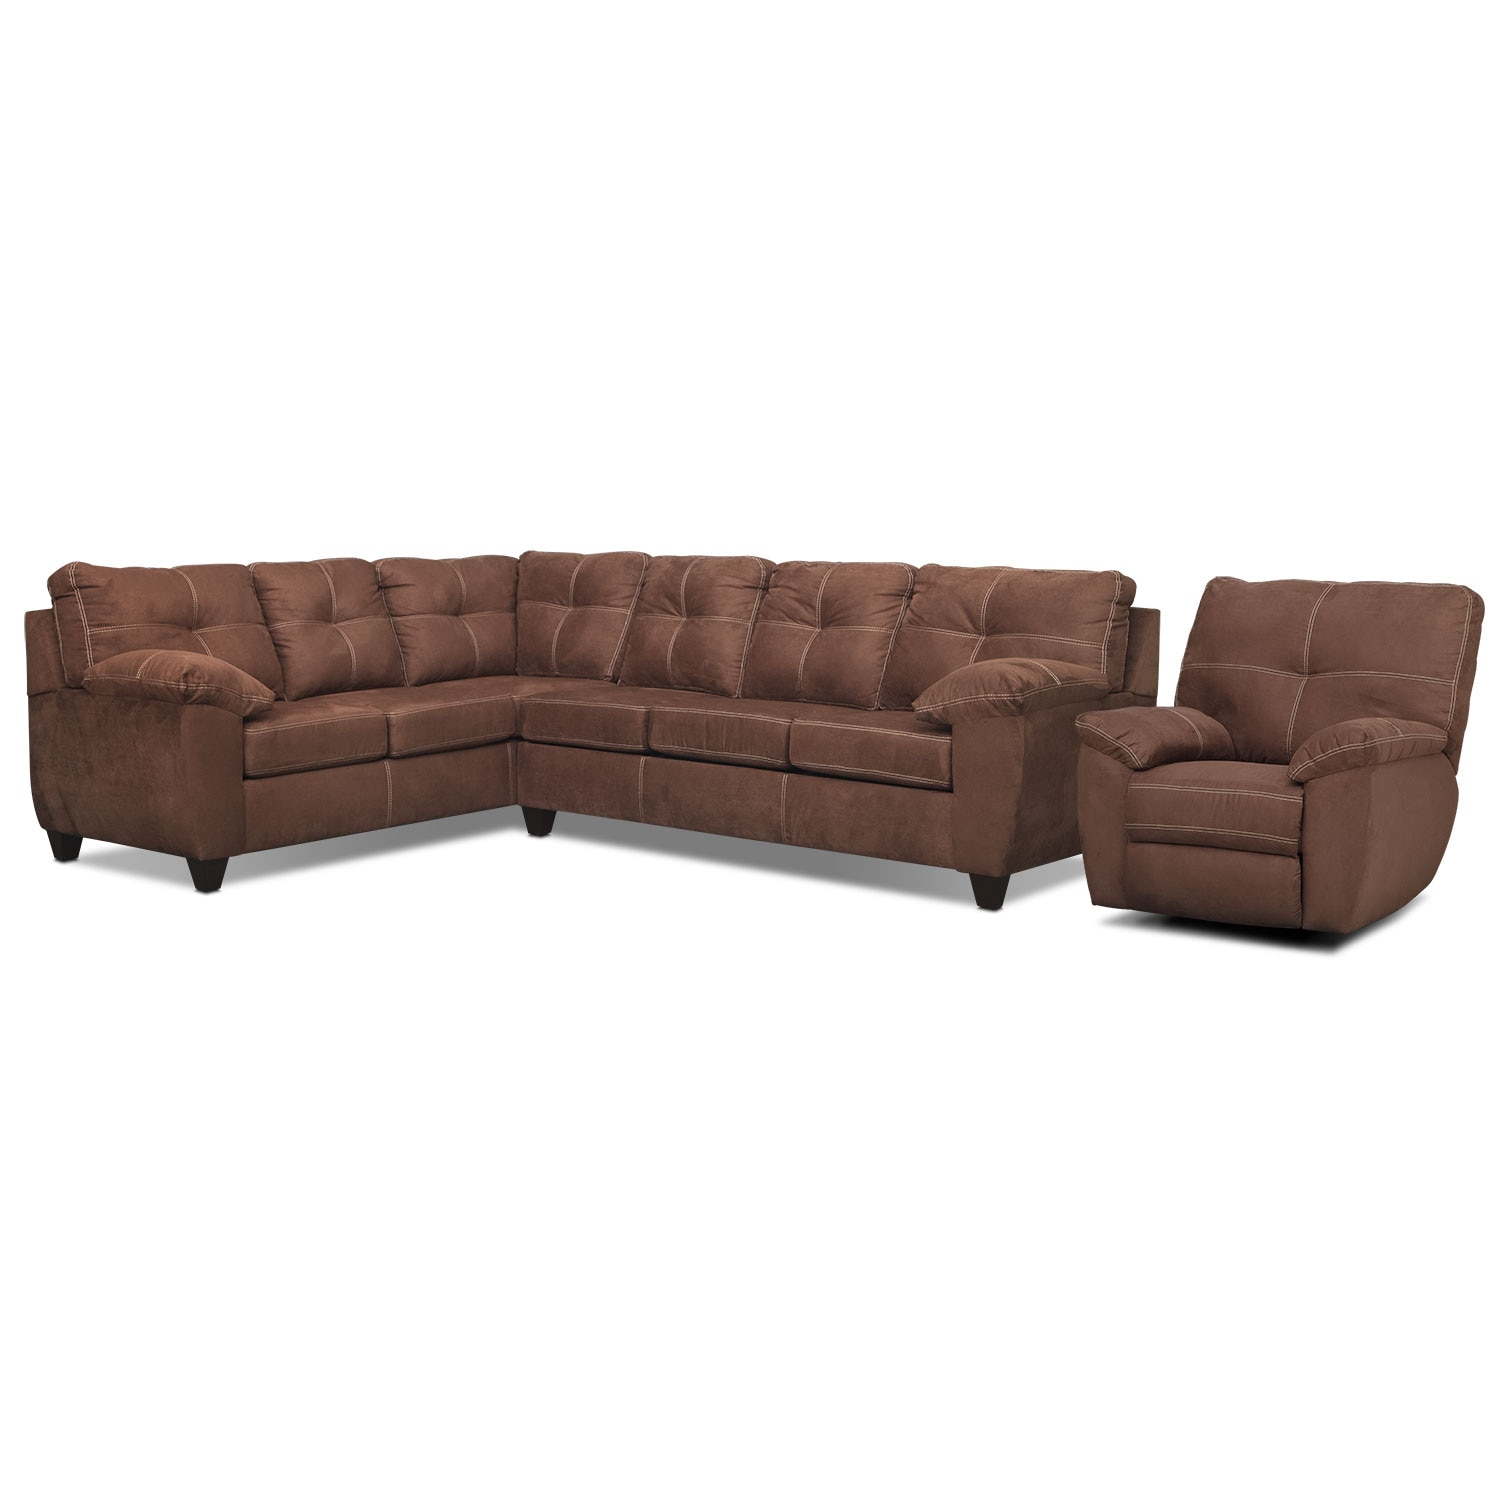 Living Room Furniture - Rialto 2-Piece Sectional with Left-Facing Corner Sofa and Glider Recliner Set - Coffee